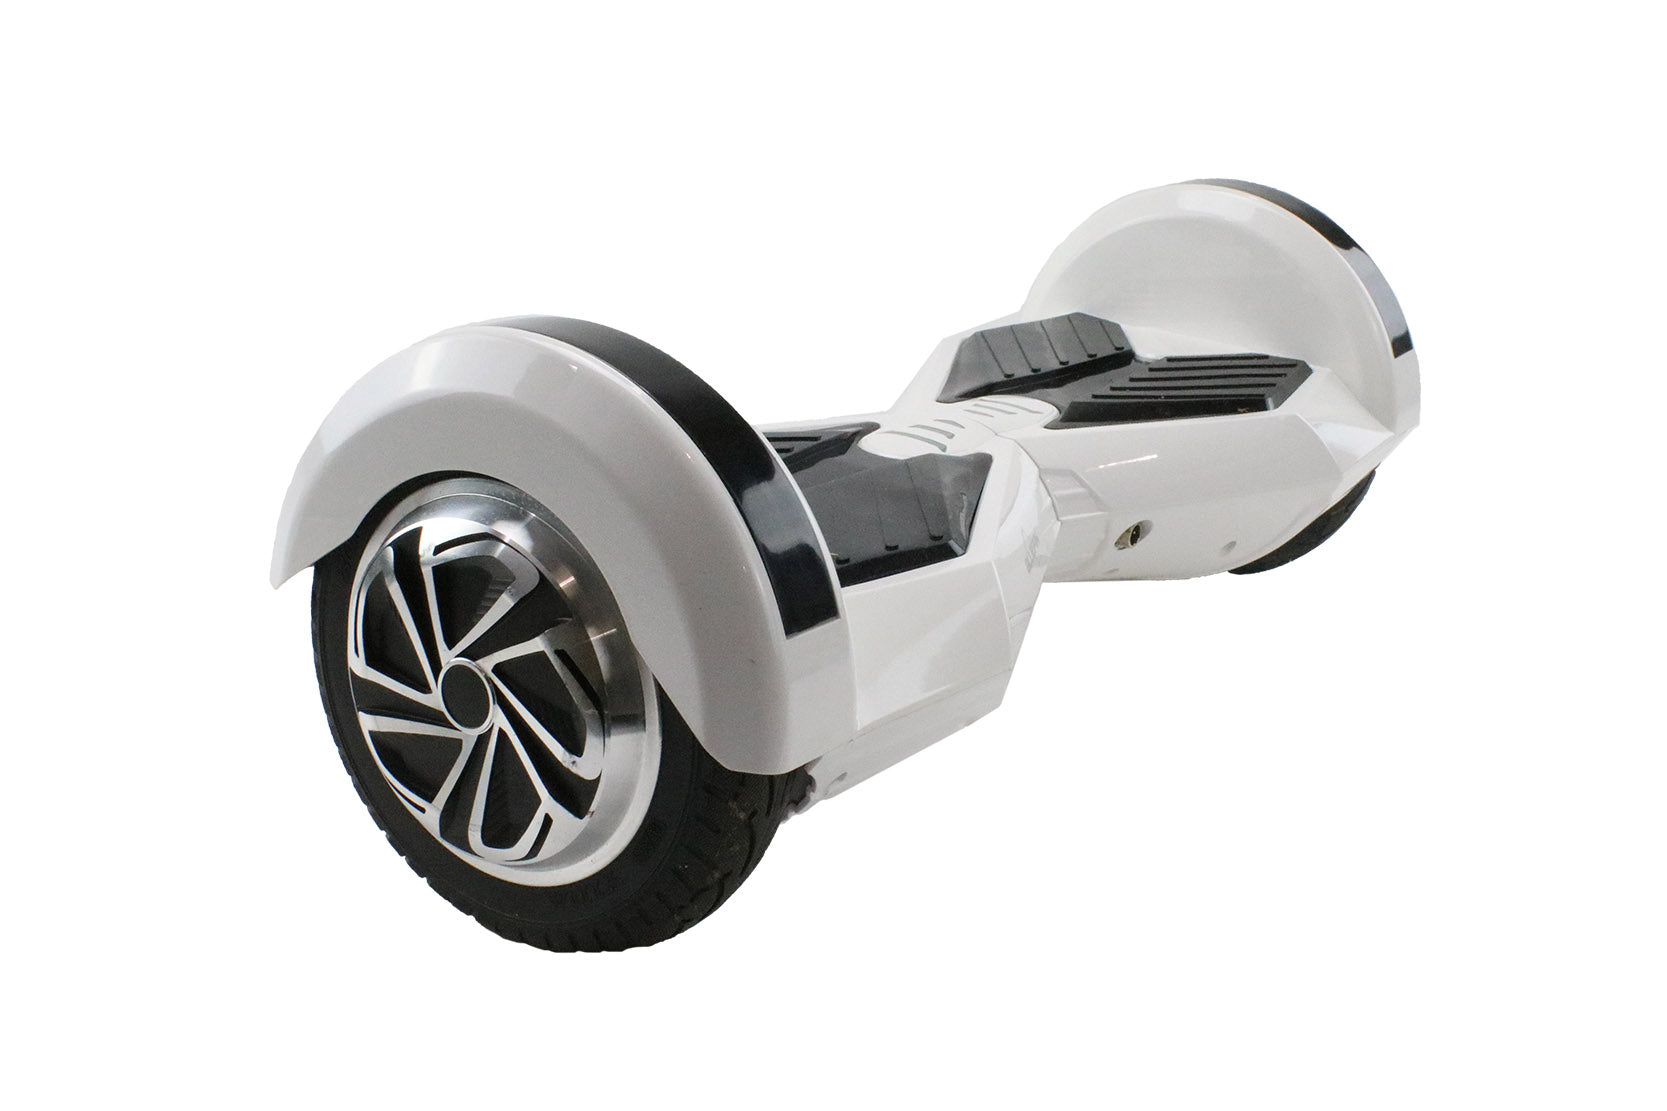 REFURBISHED Bluefin™ 8″ WHITE TRANSFORMER HOVERBOARD + SILI OFFROAD SUSPENSION HOVERKART BUNDLE